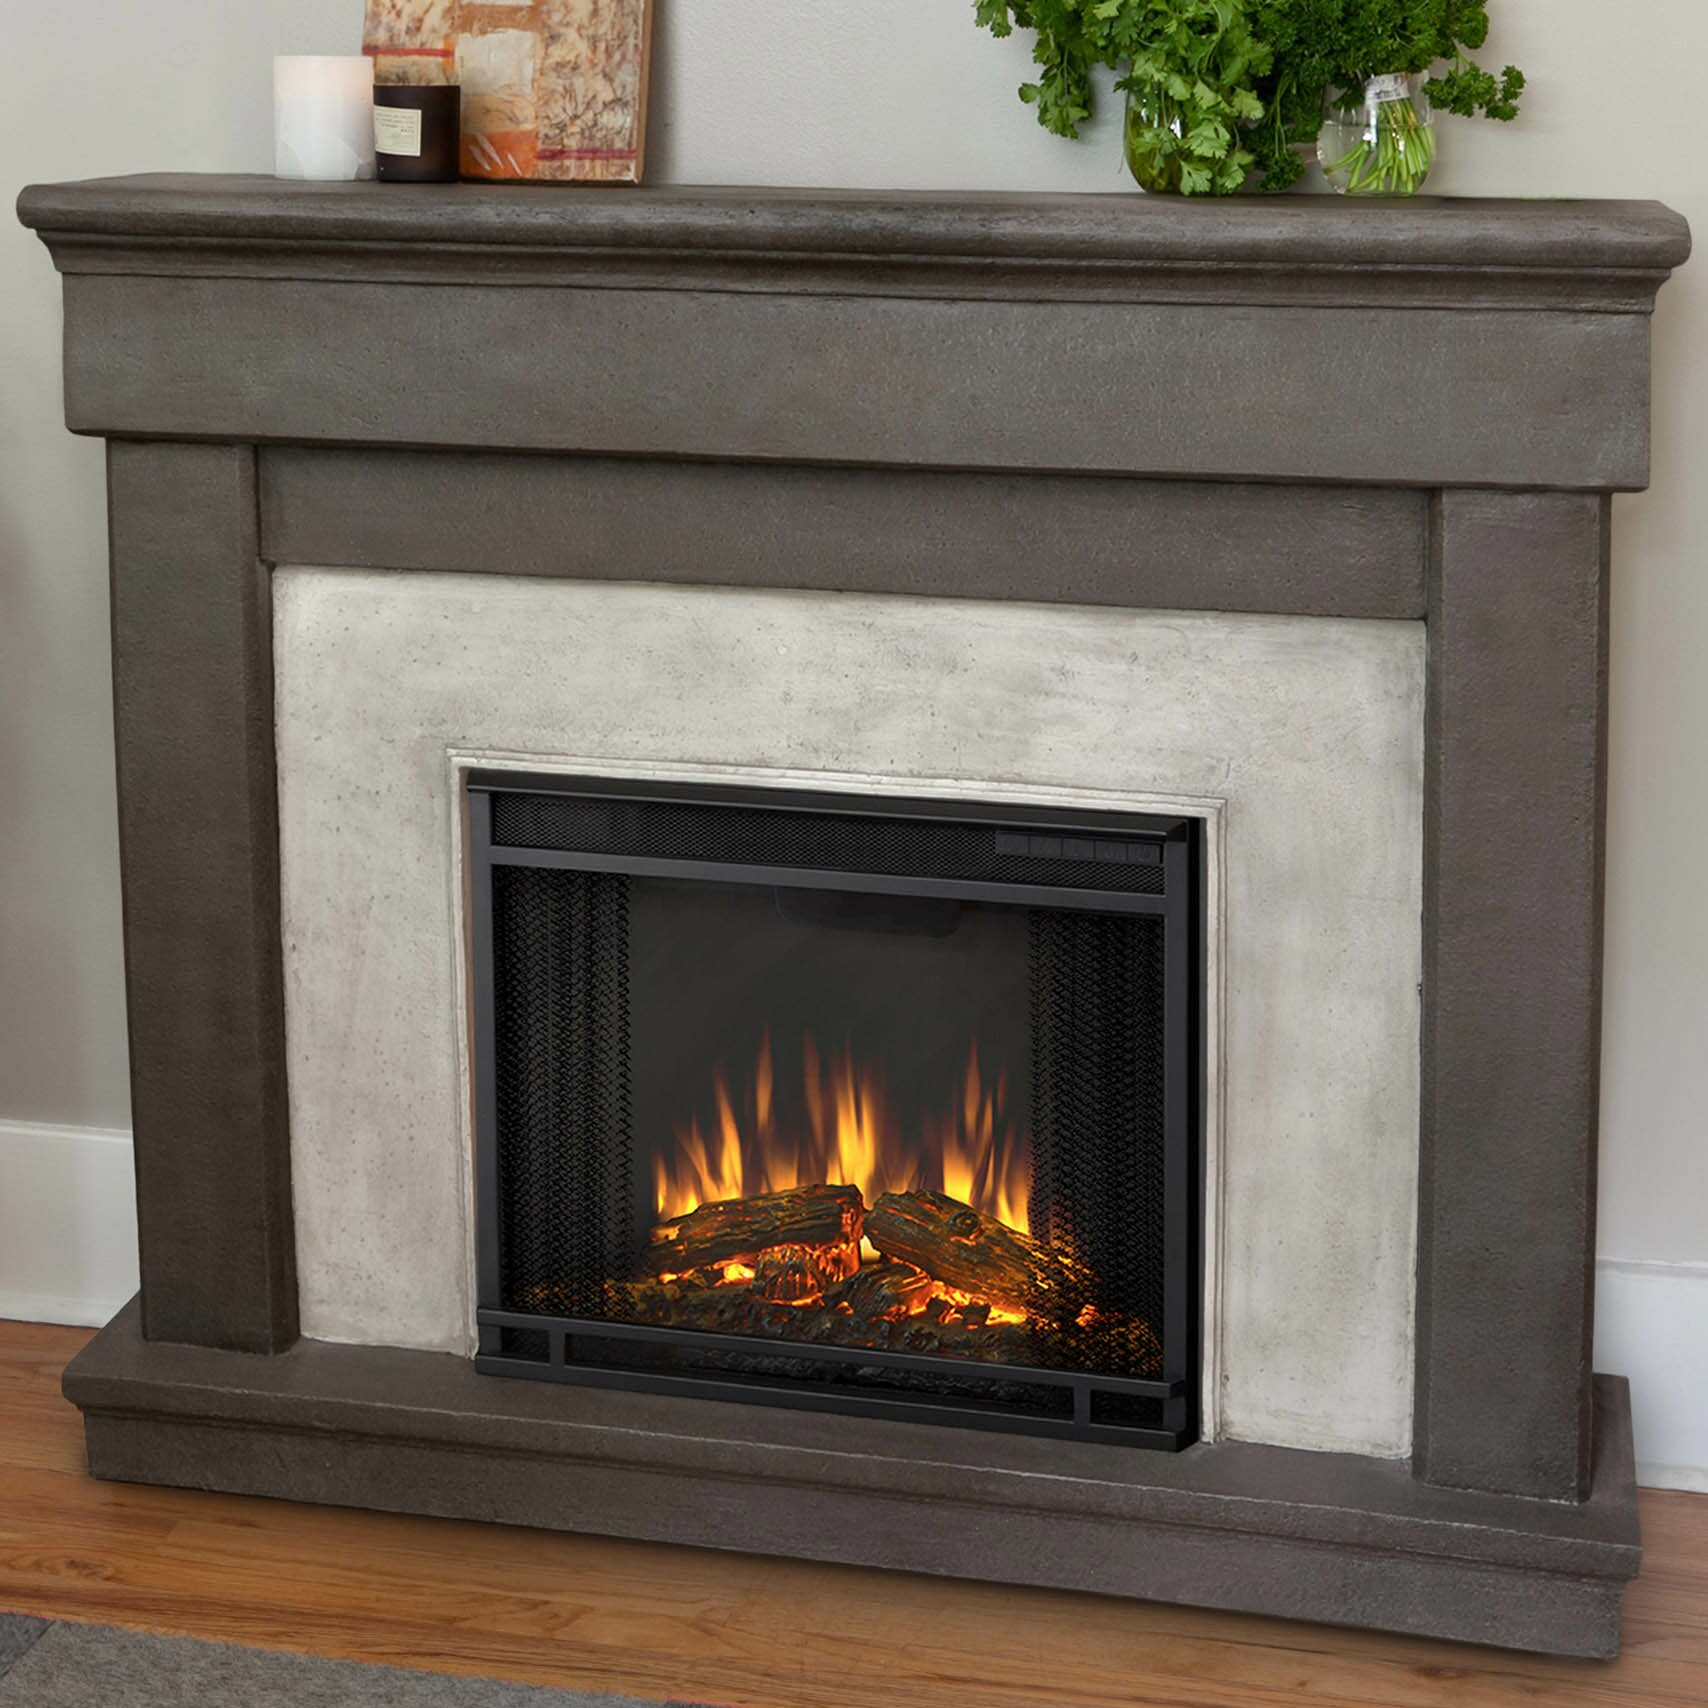 Real Flame Cast Mantel Cascade Wall Mount Electric